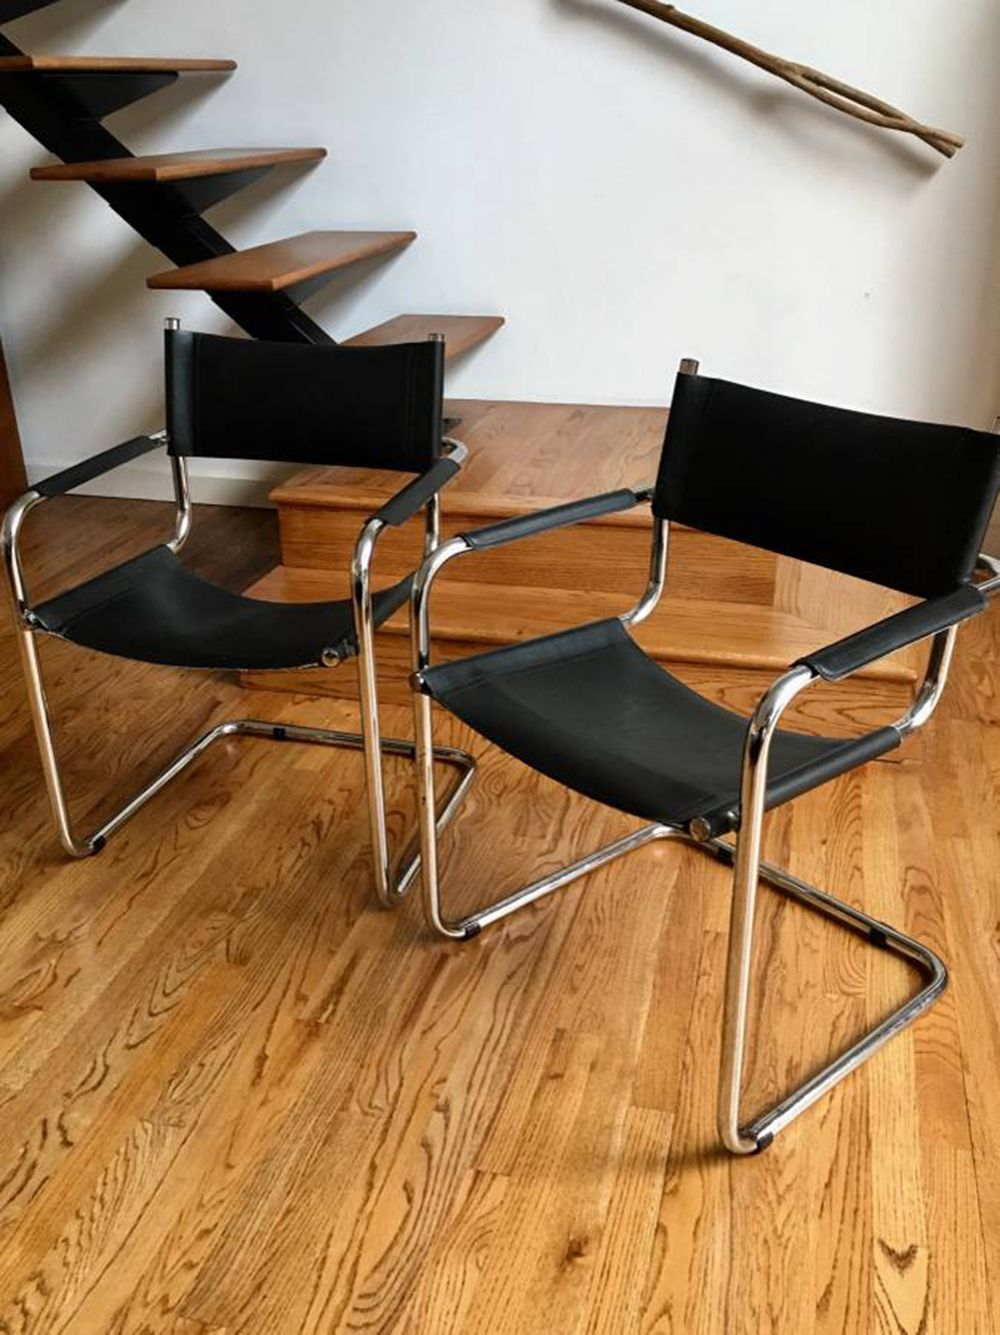 50 Bentwood Chairs 10 Stools Free Bookcases The Best Dallas Craigslist Finds Right Now Comfortable Dining Chairs Bentwood Chairs Decorating Small Spaces